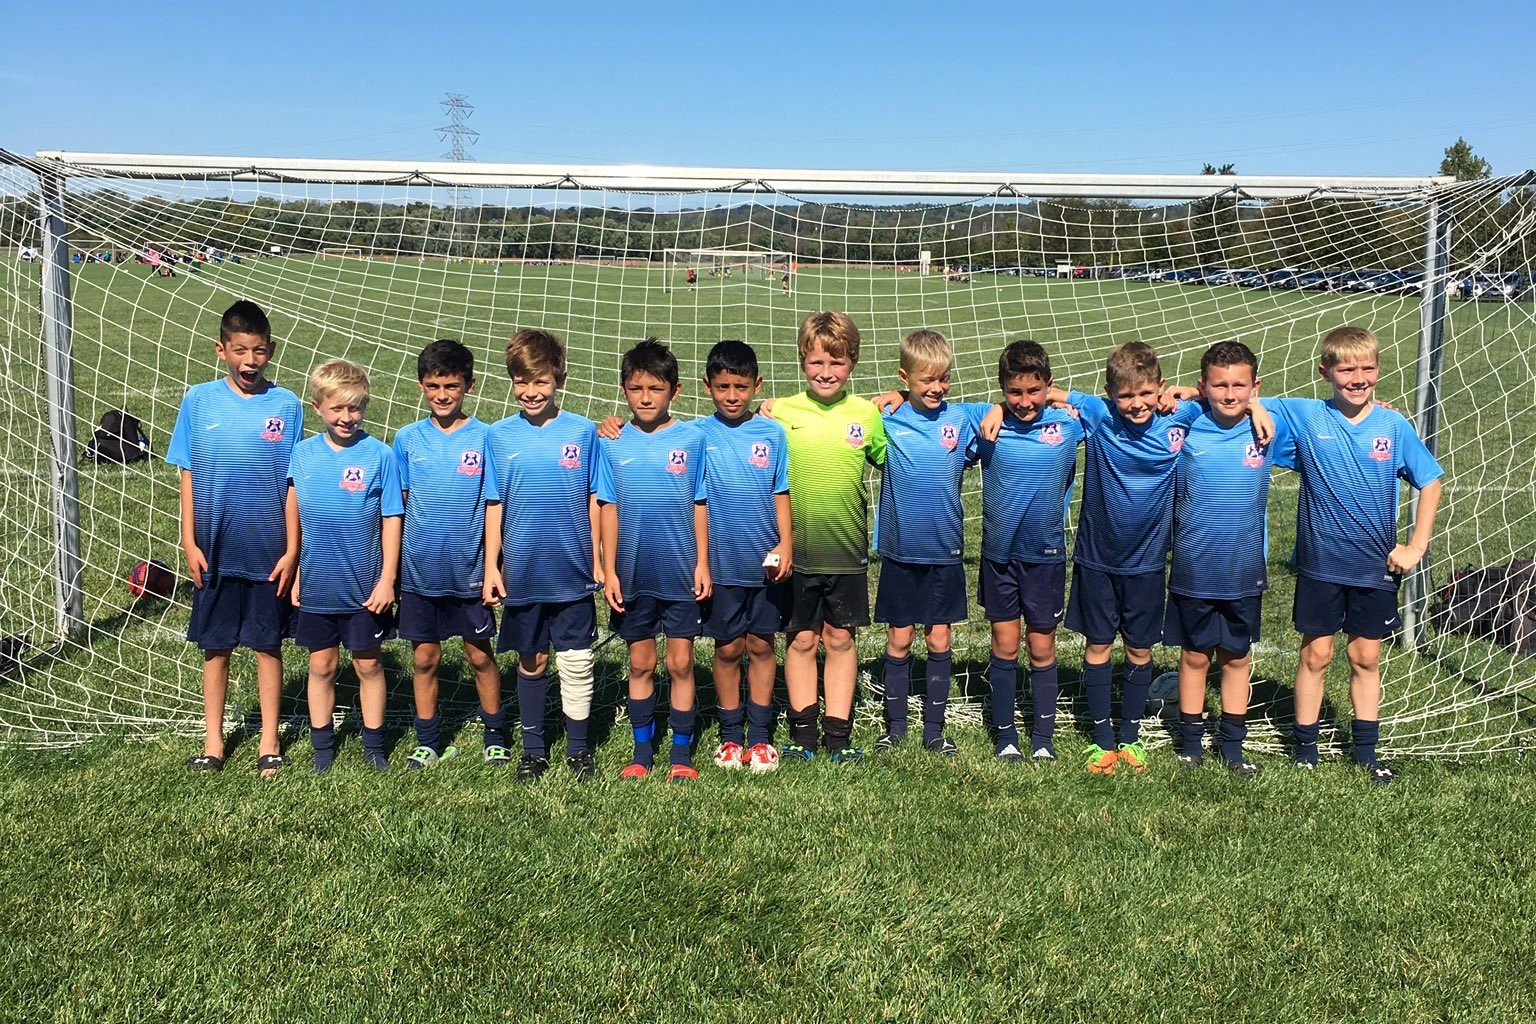 2007 Boys White Win Buckeye League!